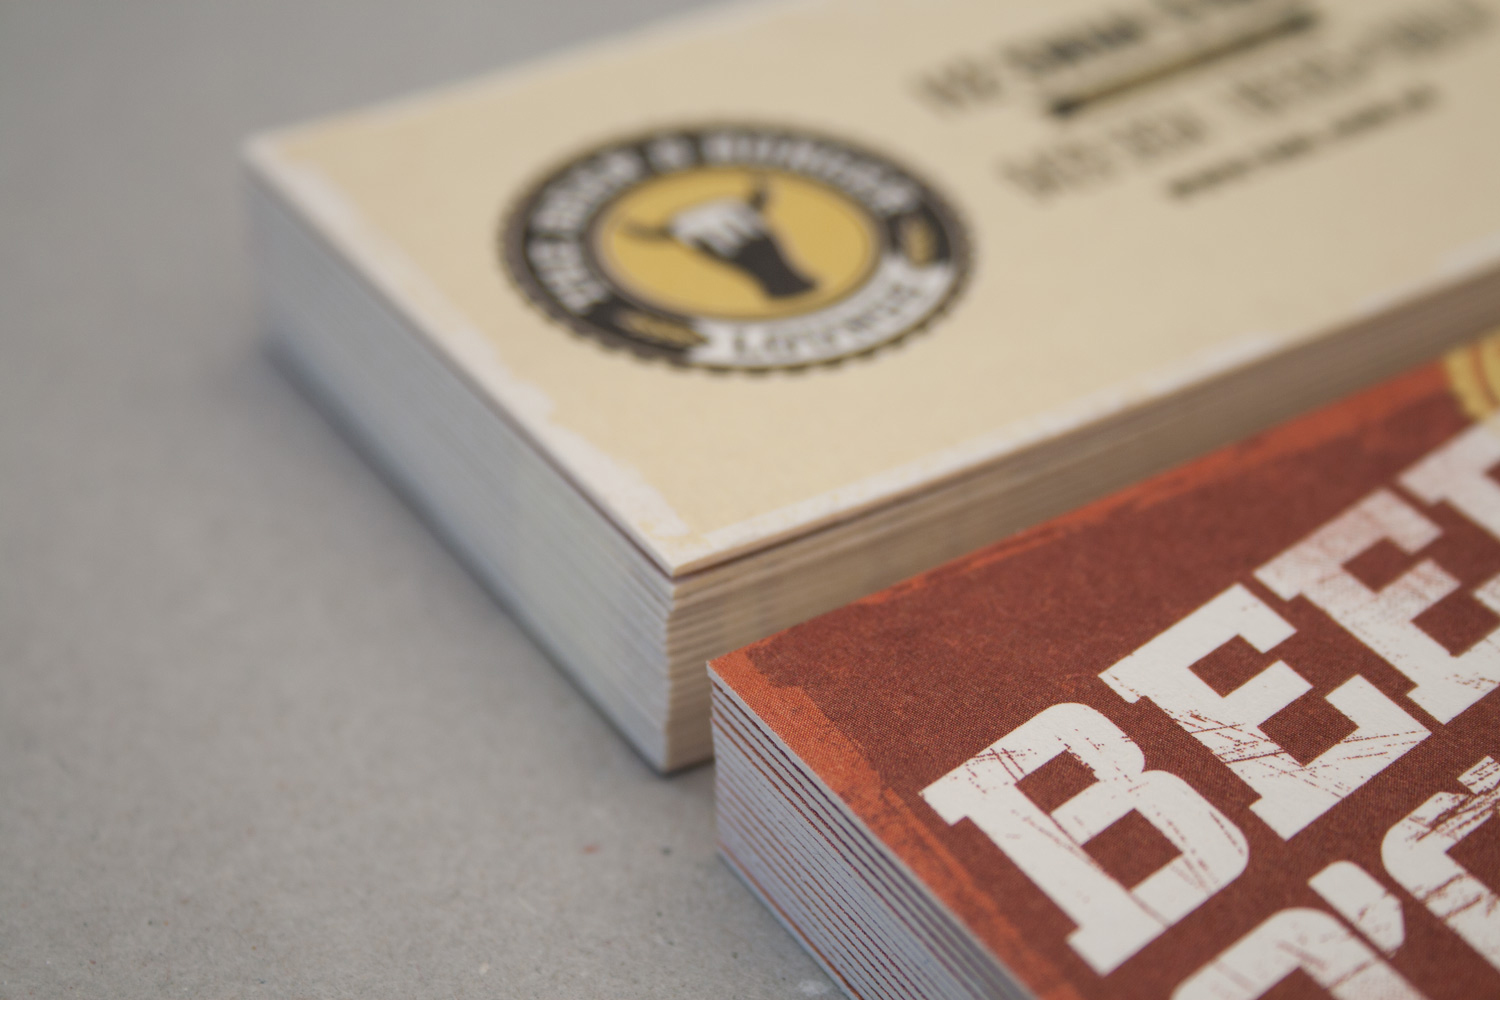 The Beer and burger lounge business cards